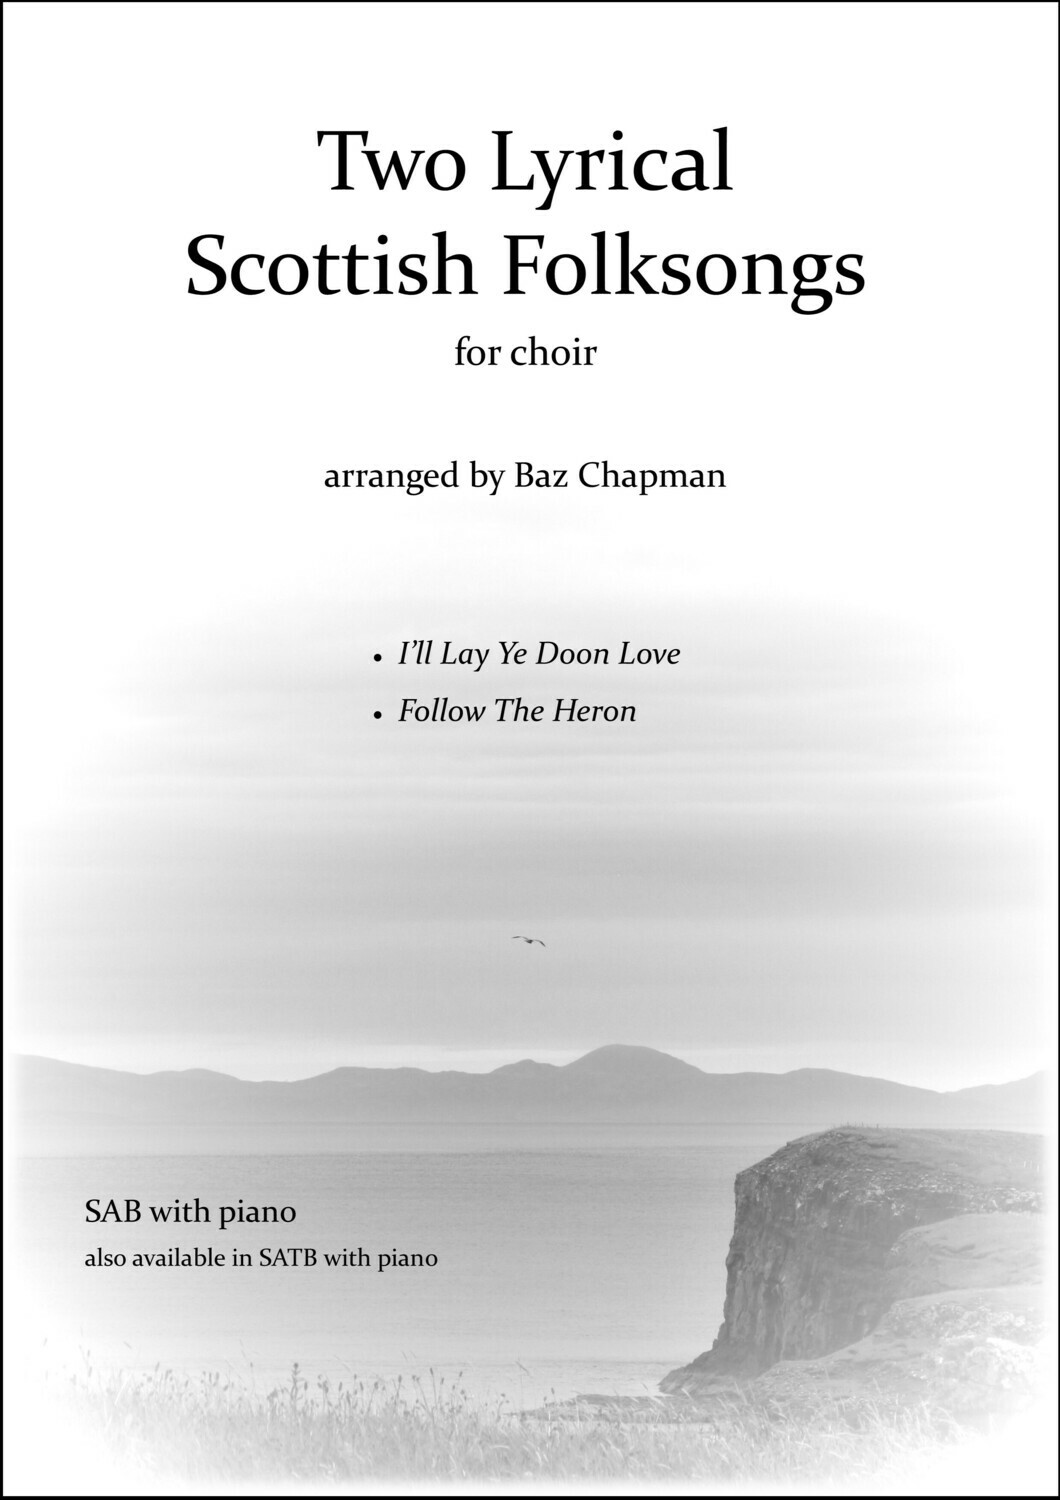 Two Lyrical Scottish Folksongs - SAB piano vocal score